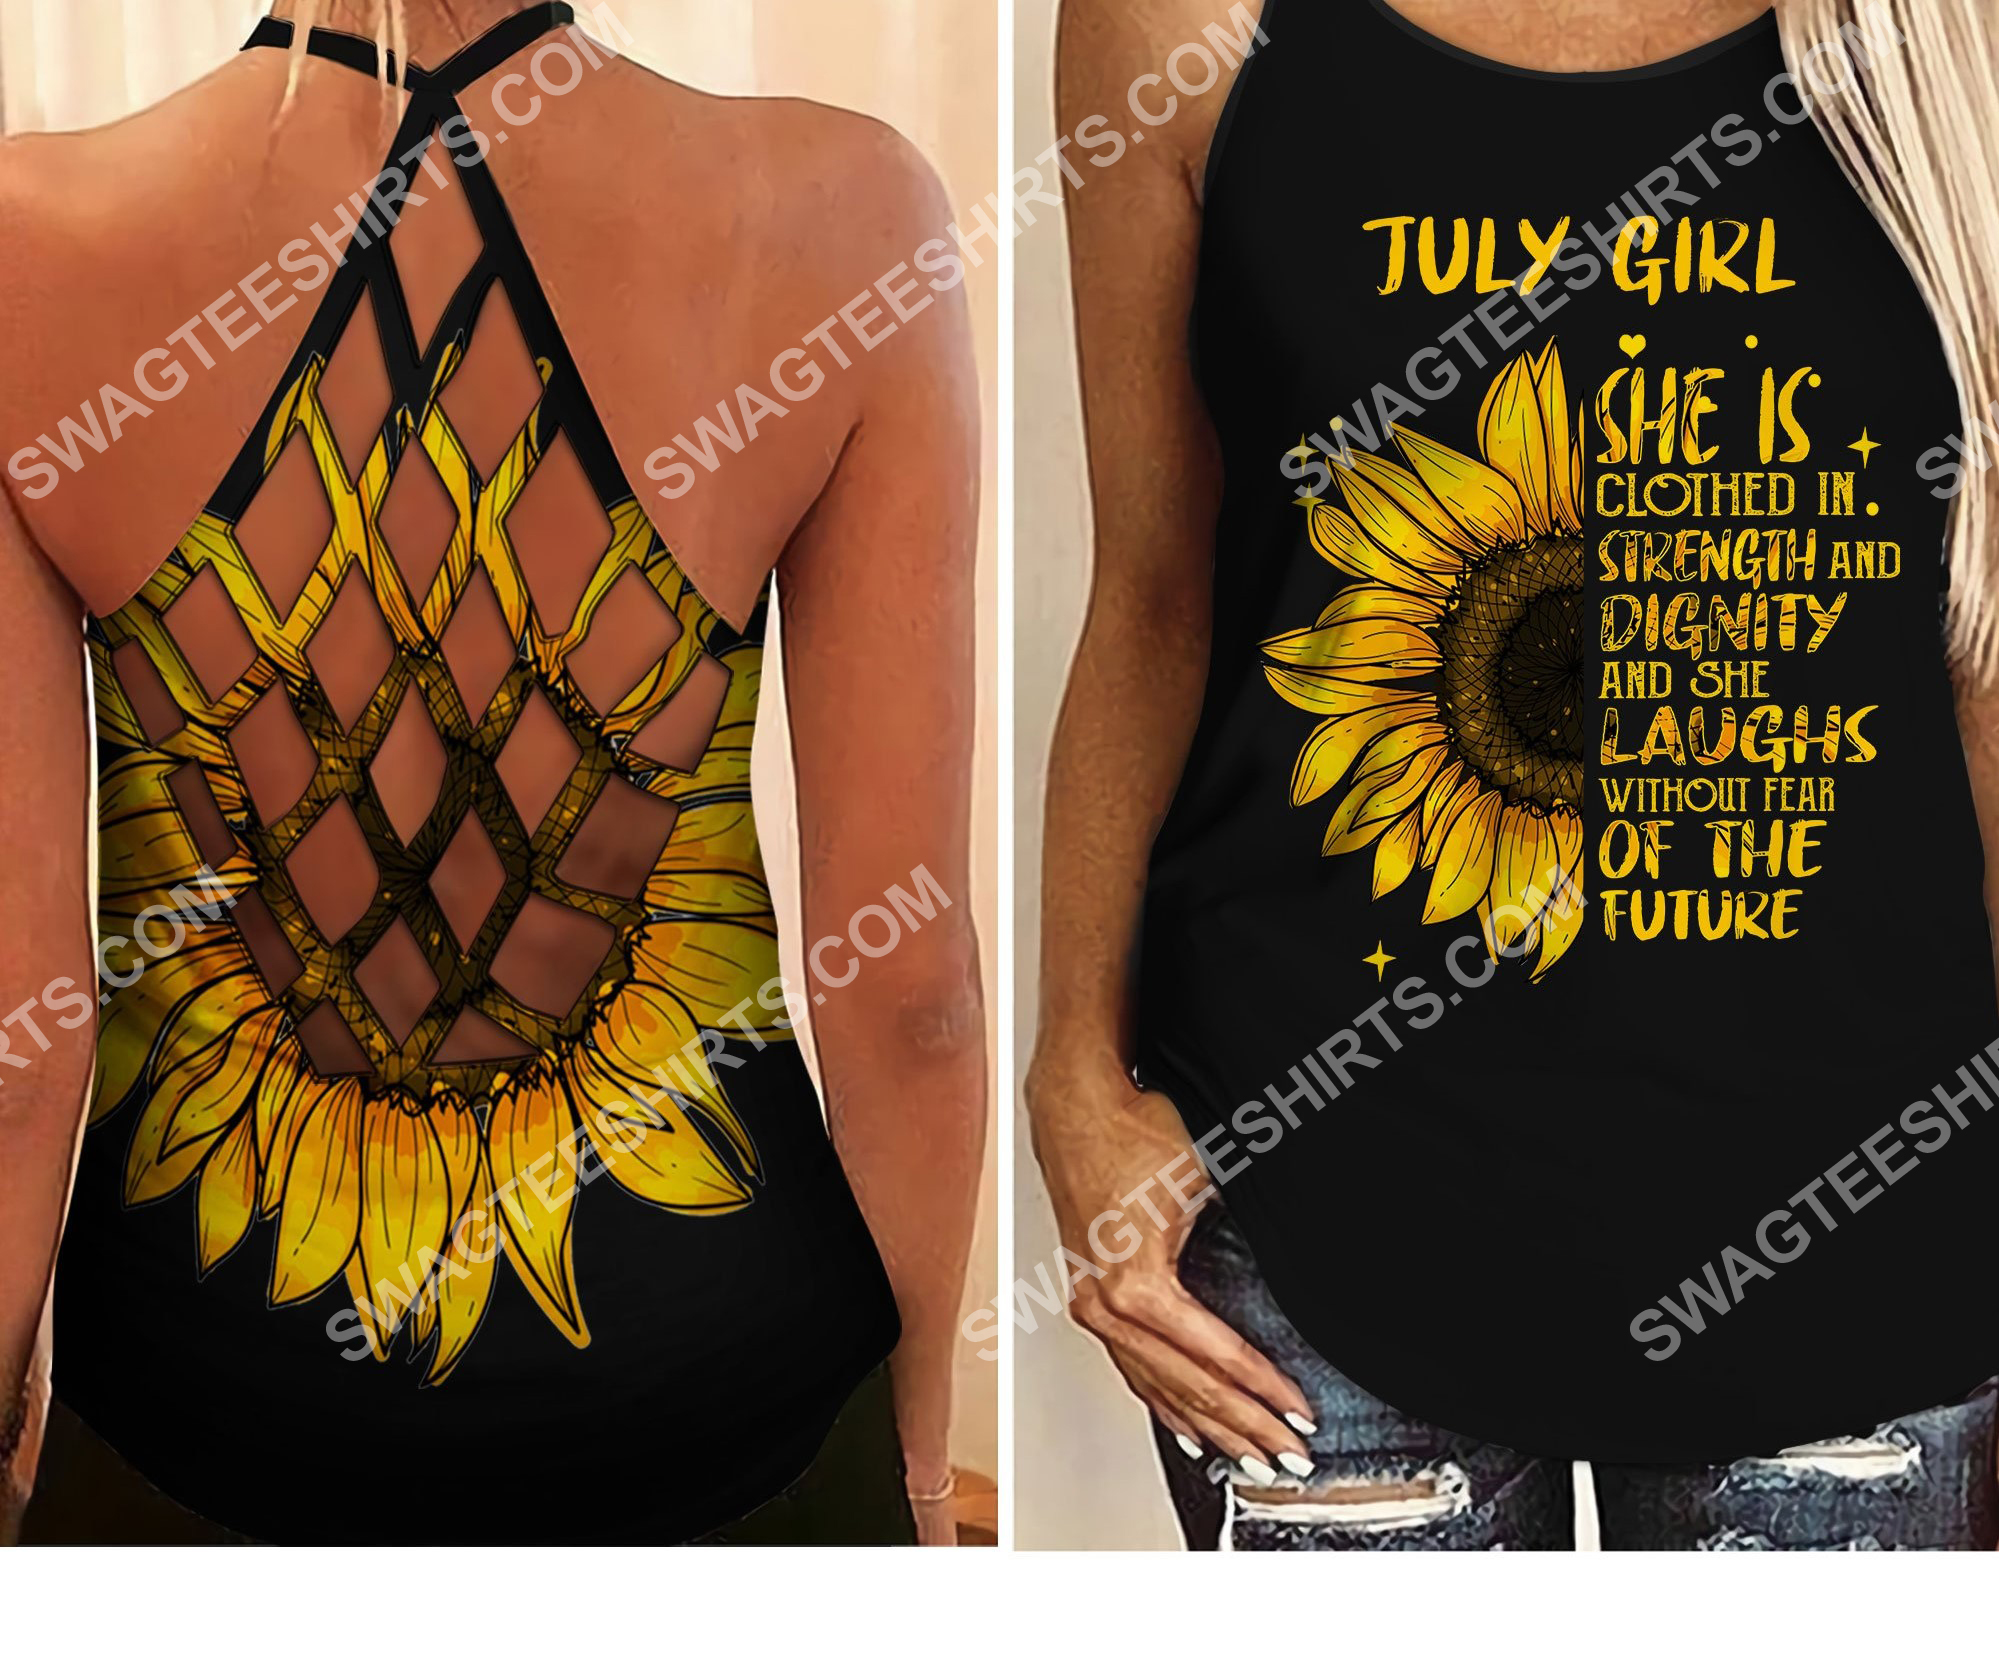 sunflower july girl she is clothed with strength and dignity criss-cross tank top 2 - Copy (3)